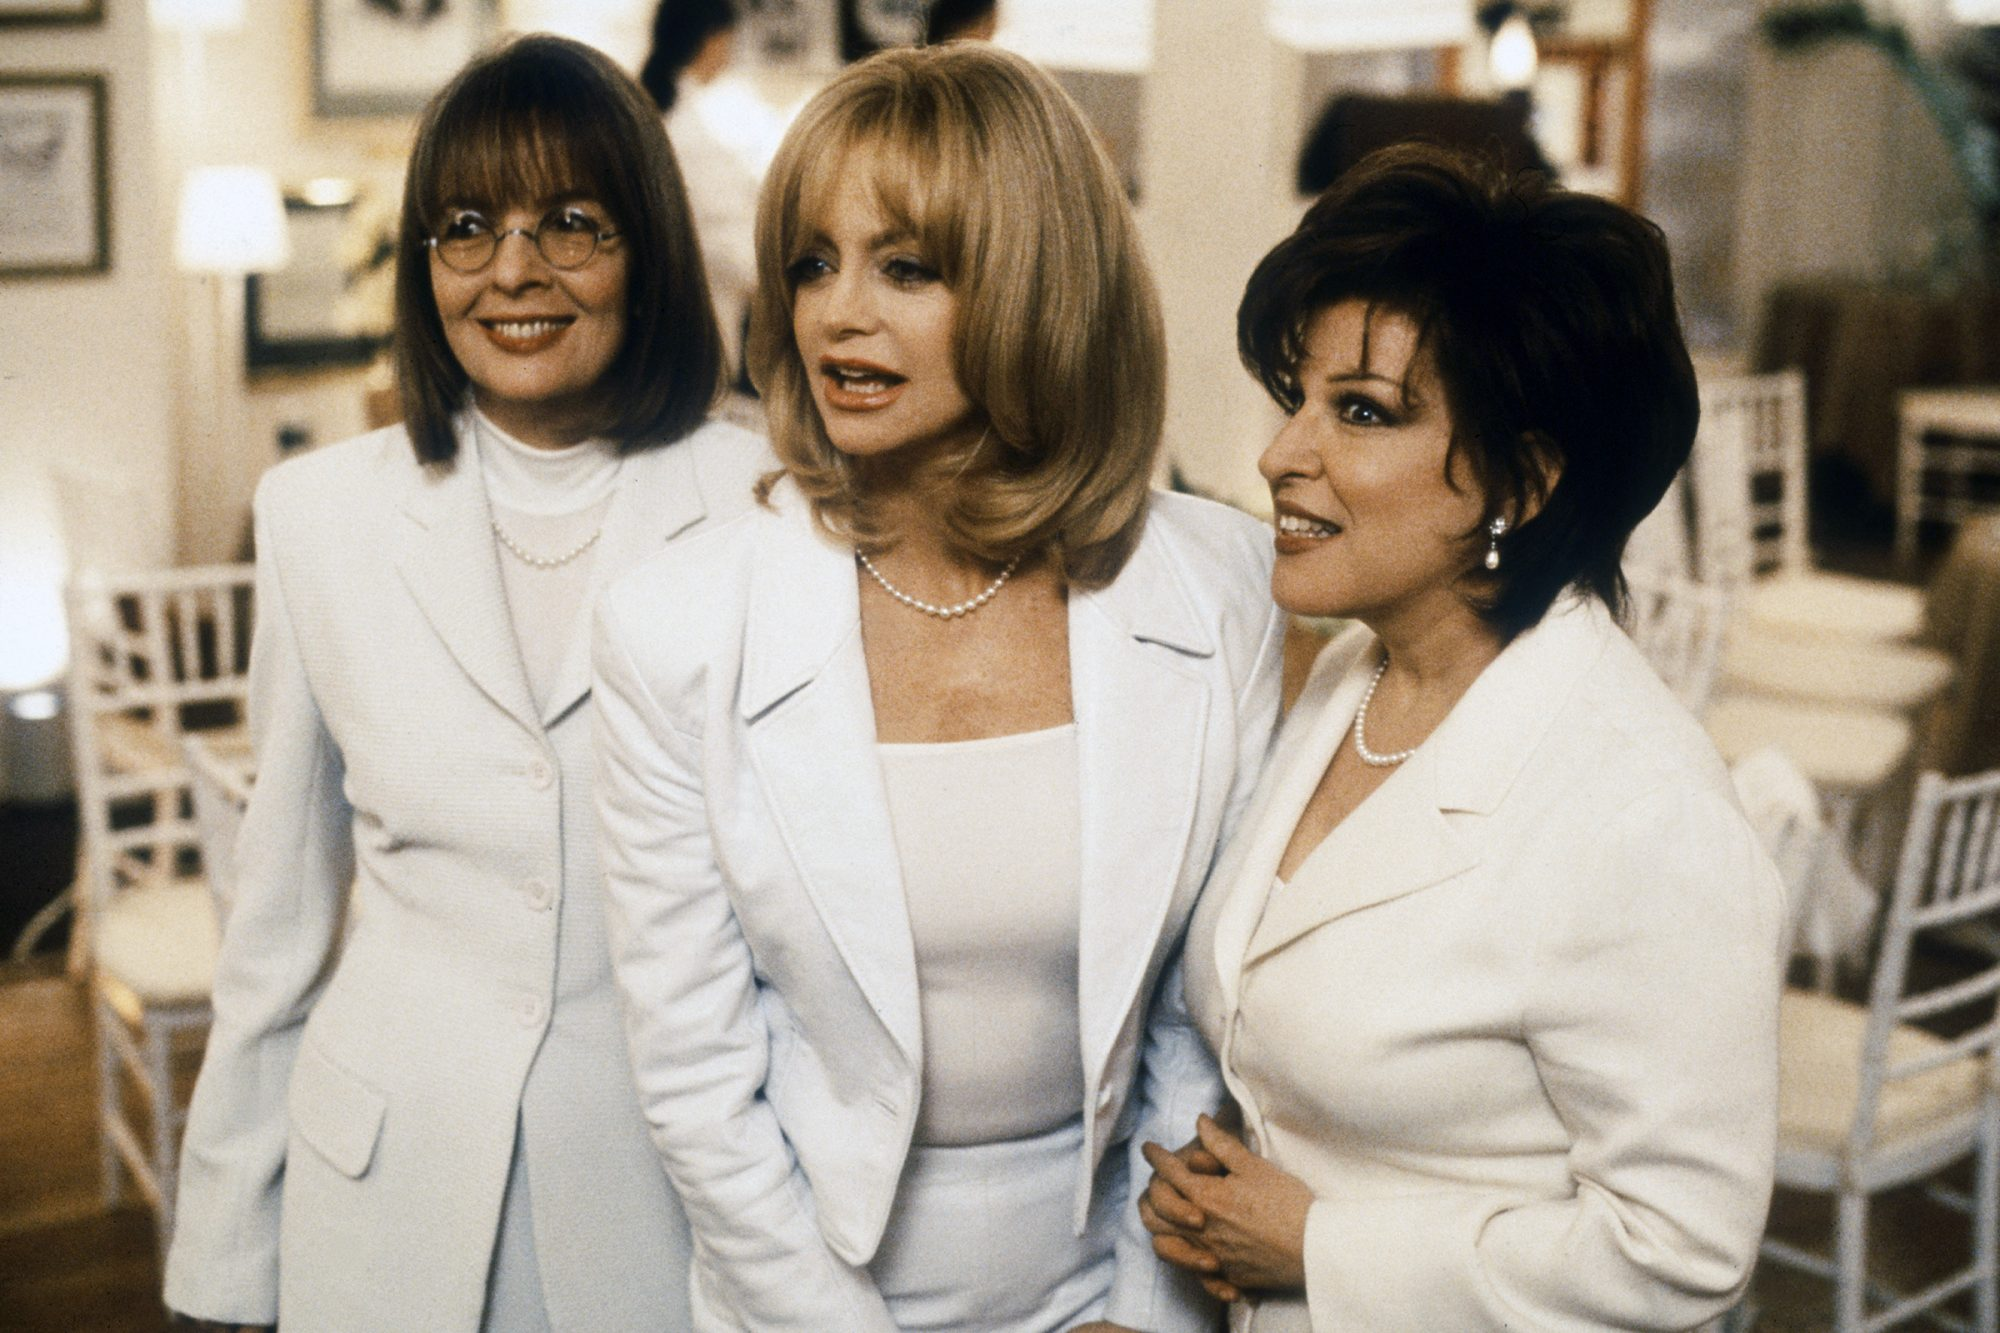 Diane Keaton, Goldie Hawn, Bette Midler The First Wives Club - 1996